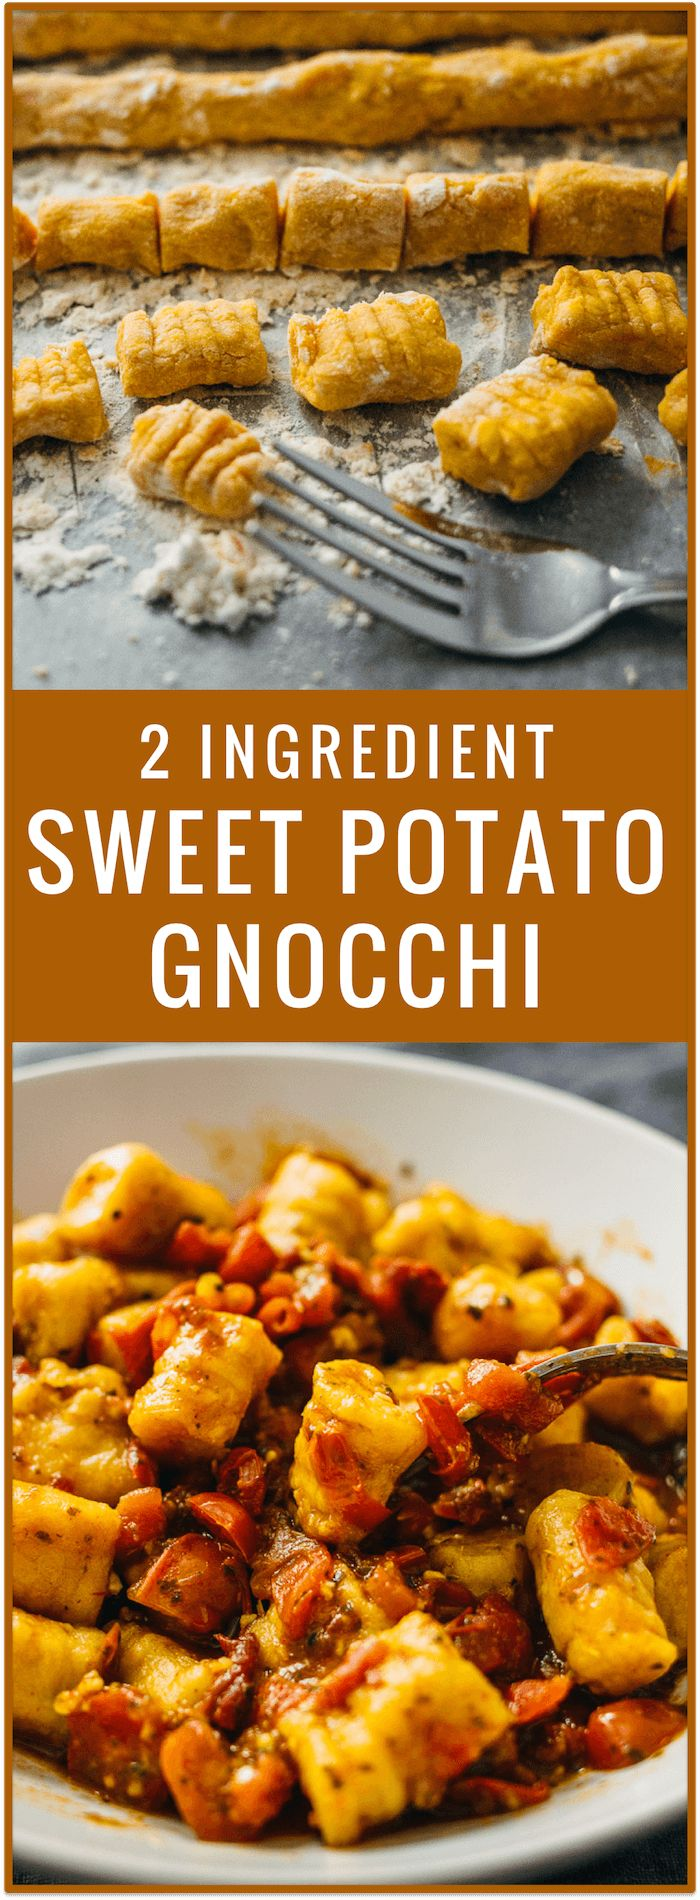 Sweet potatoes and flour are all you need for this vegan recipe. With just 2 ingredients, you'll make soft and pillowy homemade sweet potato gnocchi that beats any store-bought gnocchi. via @savory_tooth